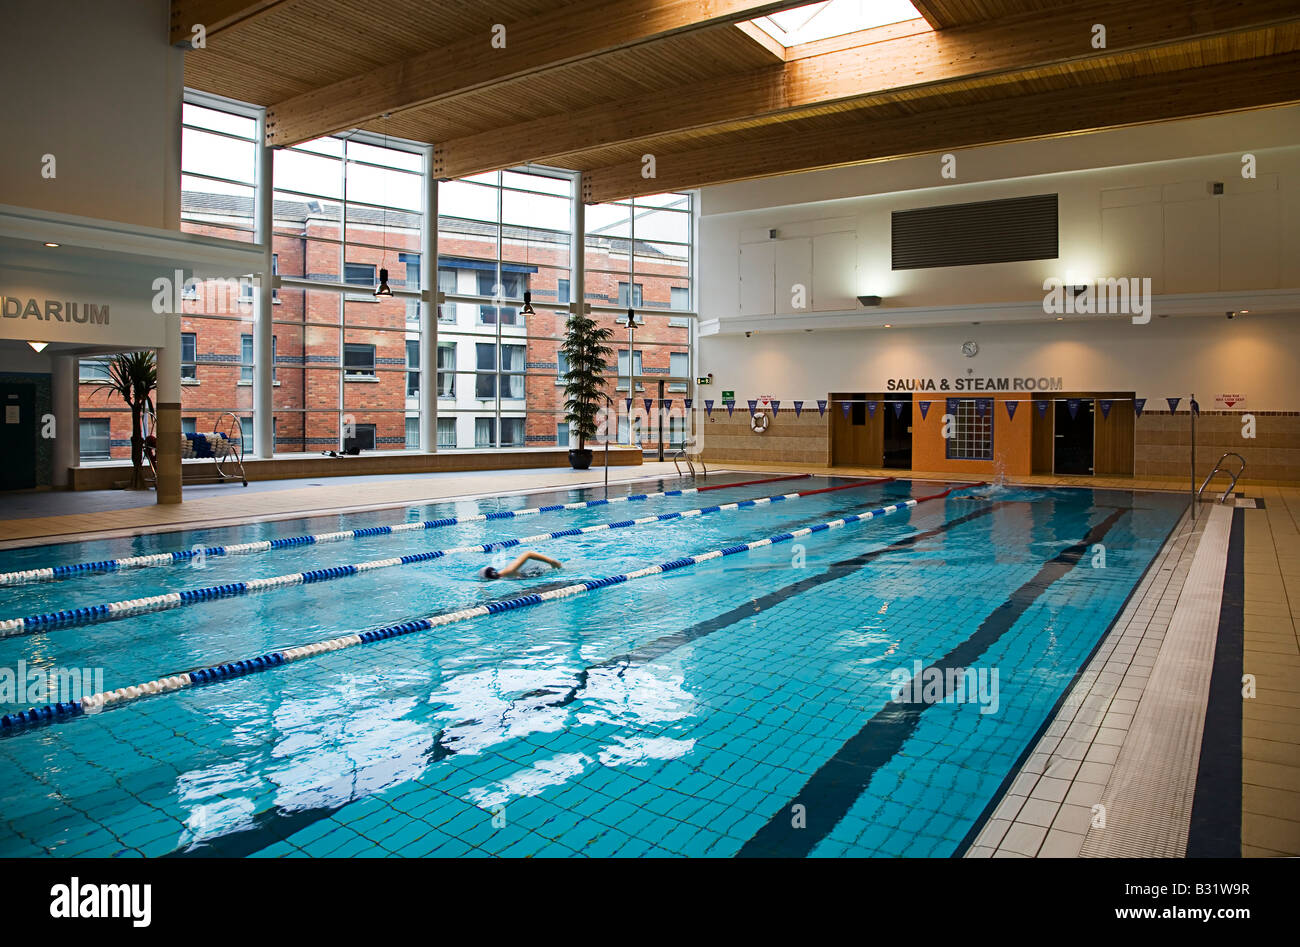 Dcu Swimming Pool Interior View Stock Photo Royalty Free Image 19096163 Alamy